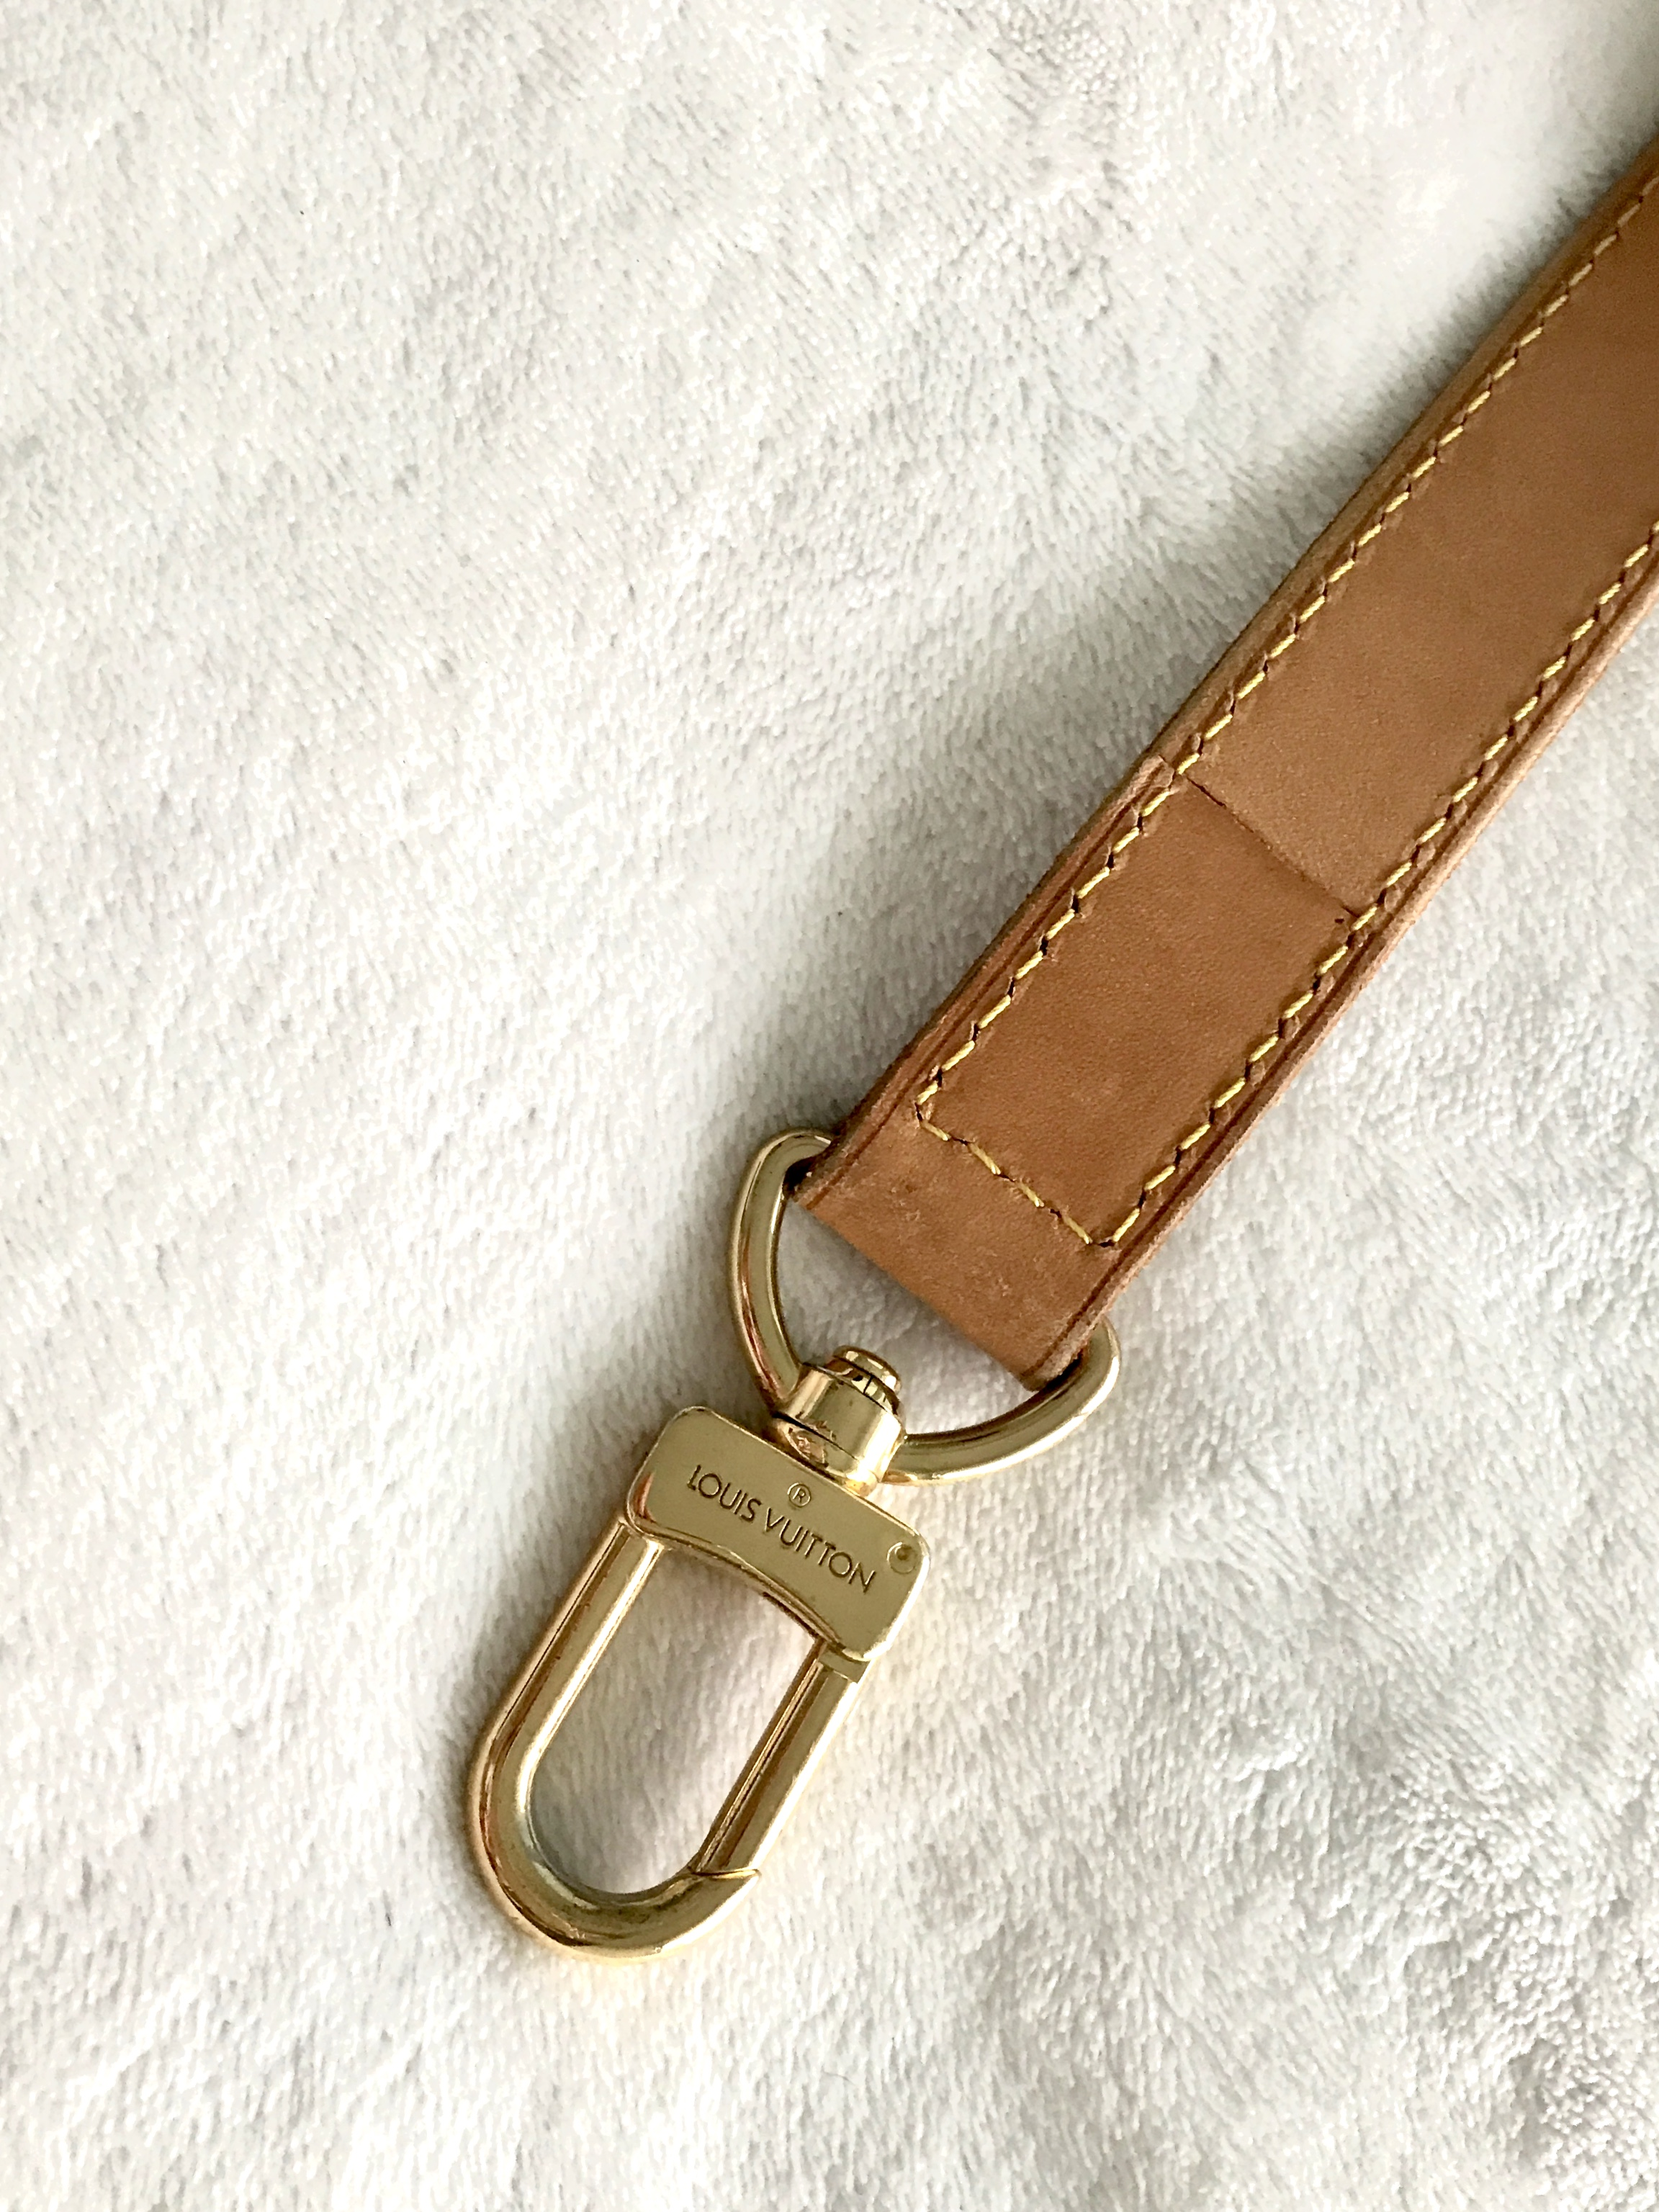 9dacd49df913 Louis Vuitton Adjustable Leather Shoulder Strap for Keepall ...